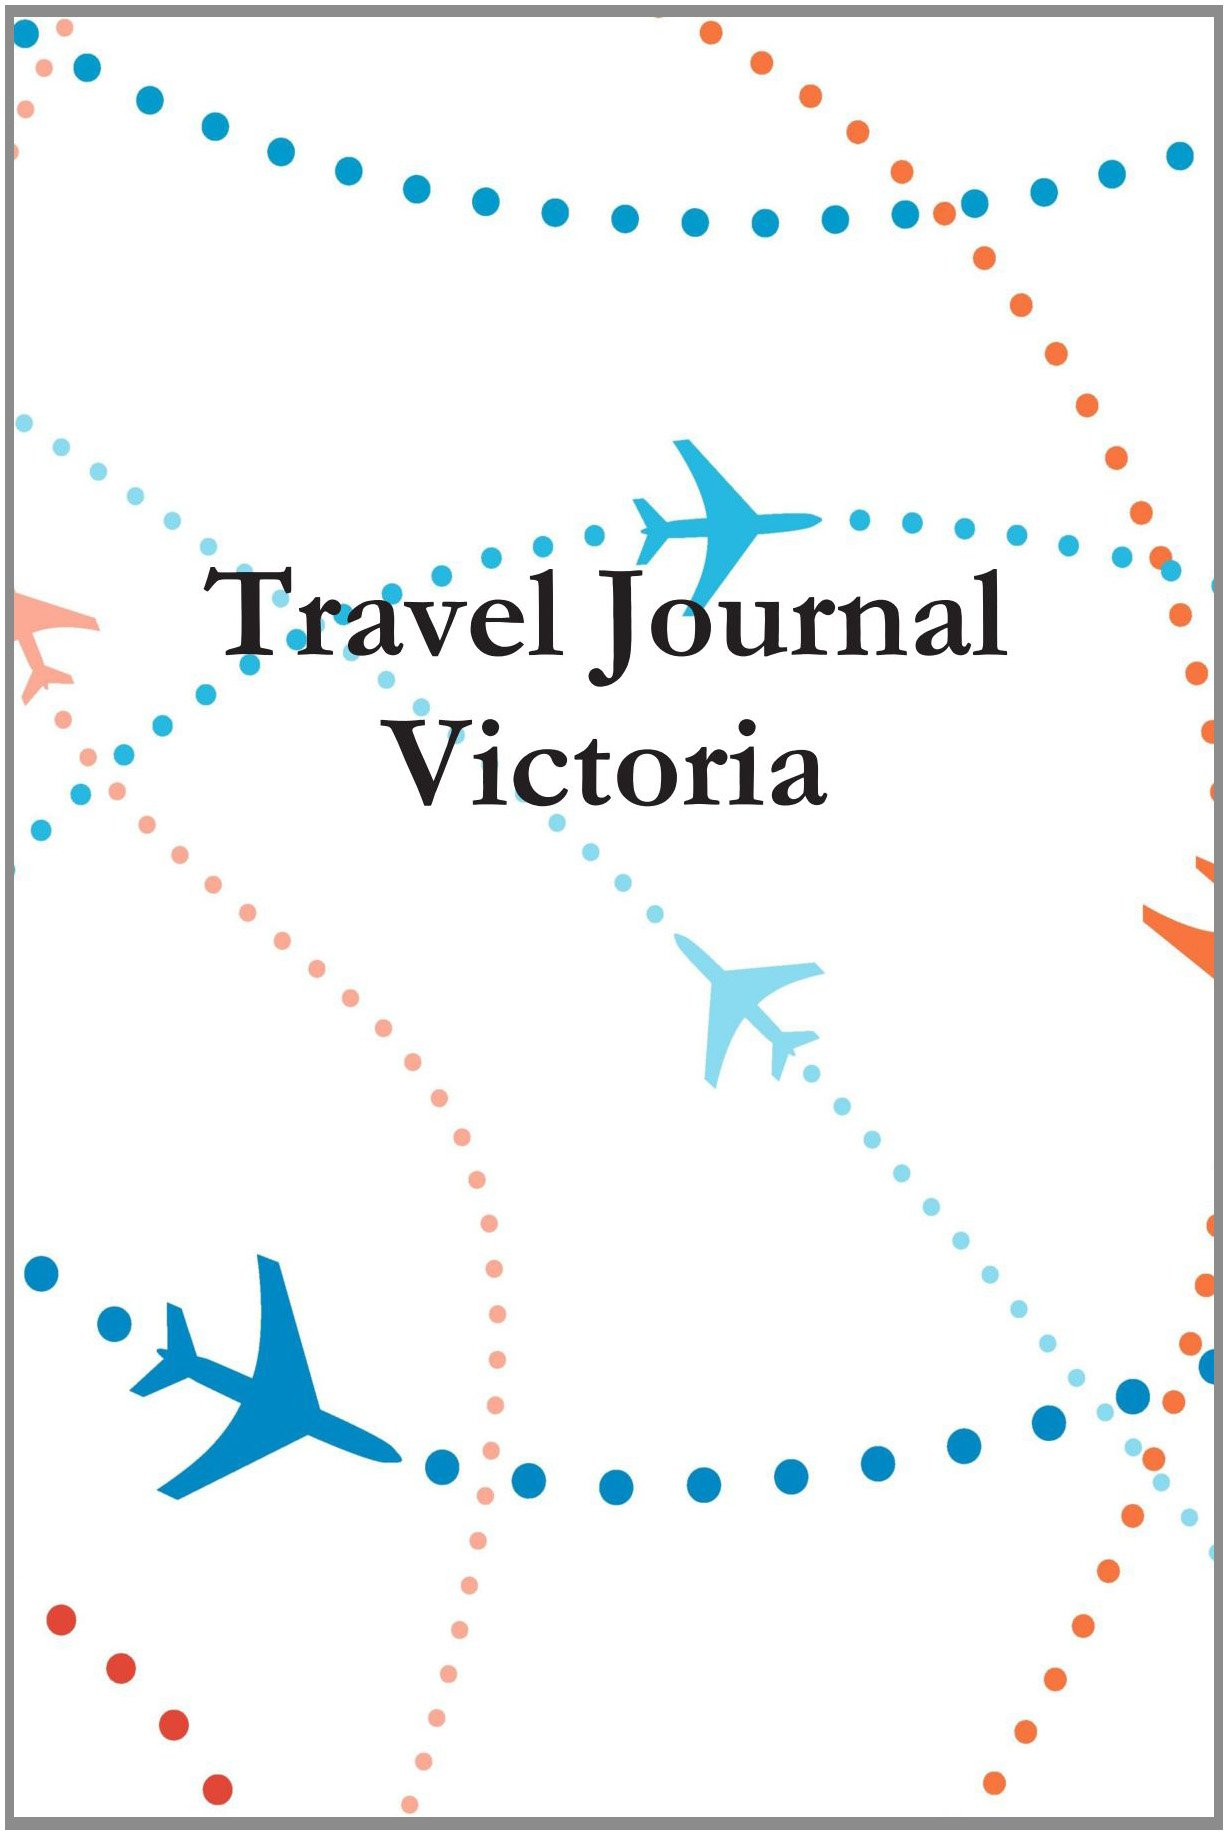 Travel Journal Victoria